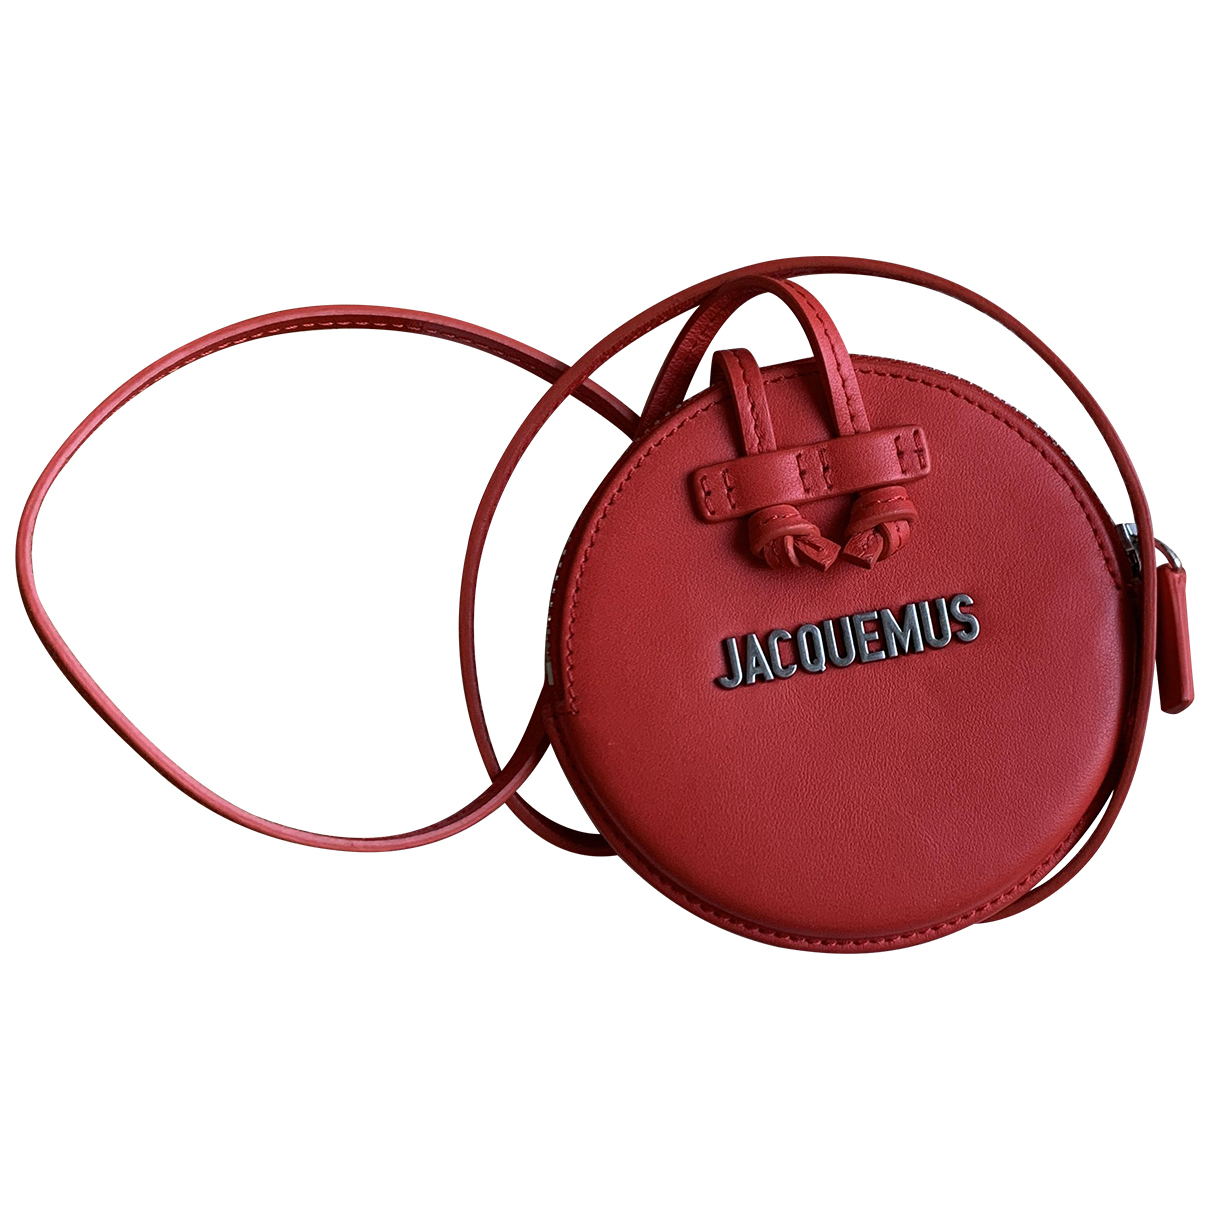 Jacquemus Le Pitchou Red Leather handbag for Women \N